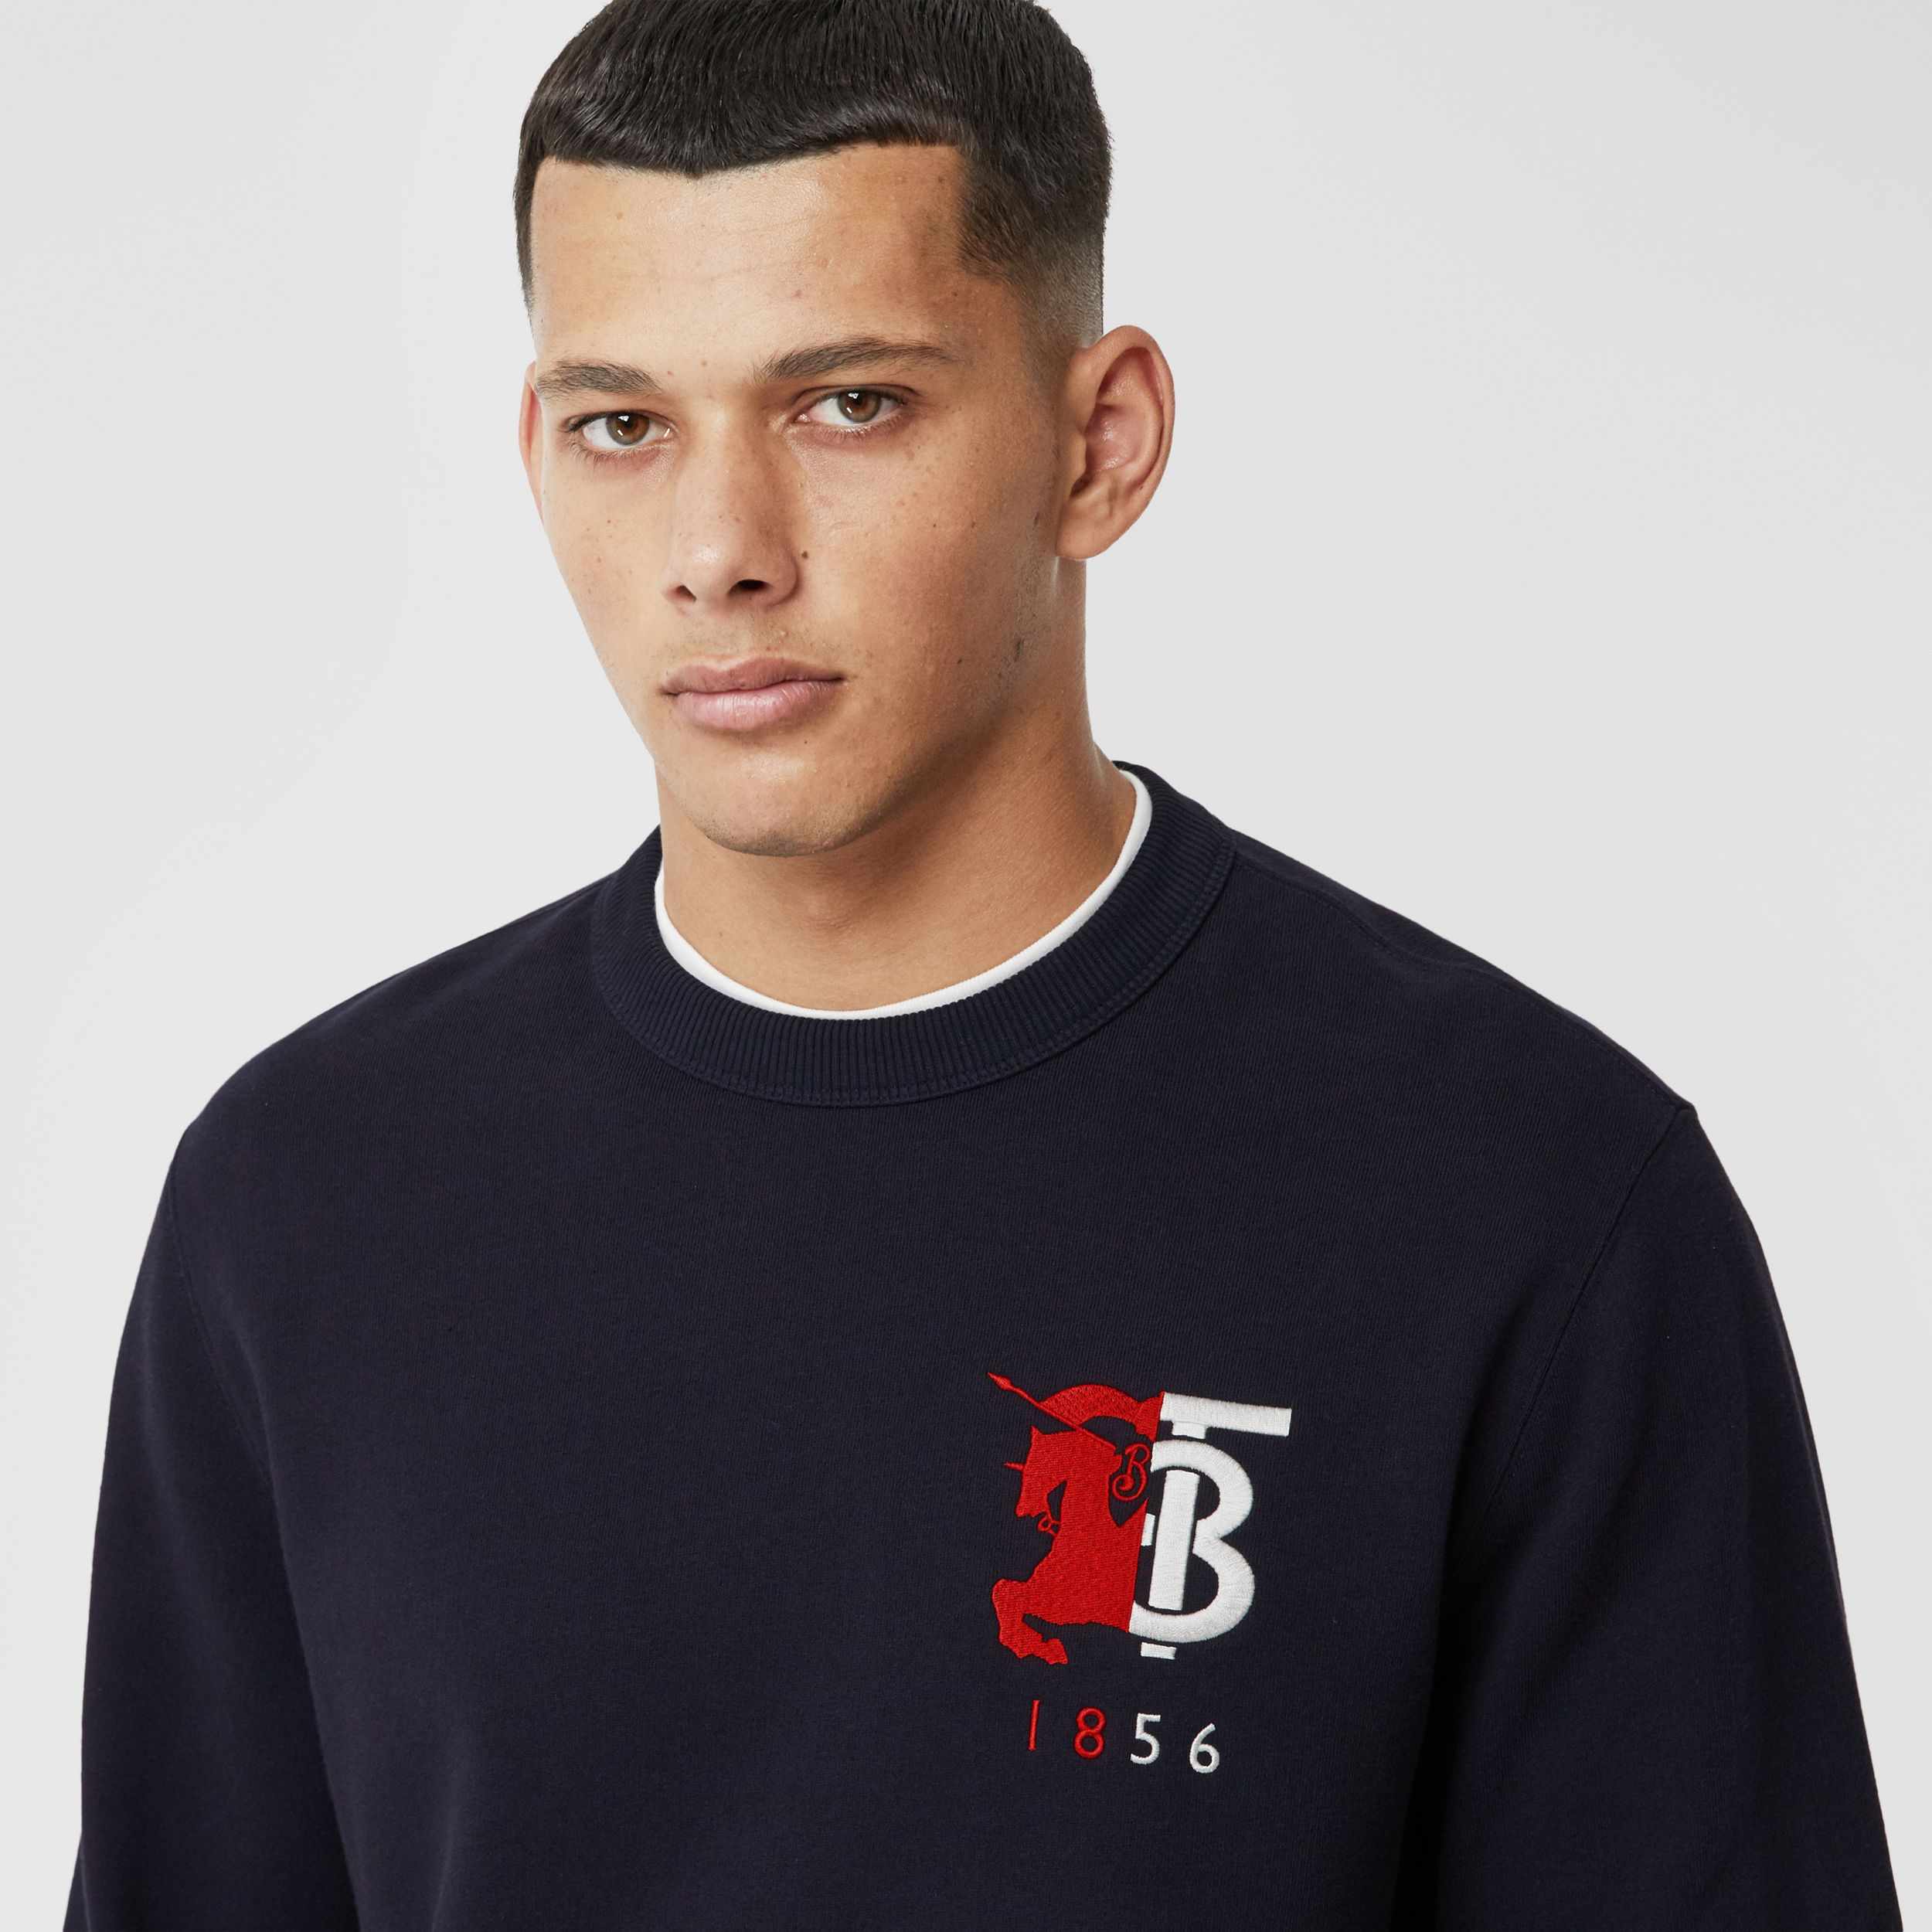 Contrast Logo Graphic Cotton Sweatshirt in Navy - Men | Burberry - 2